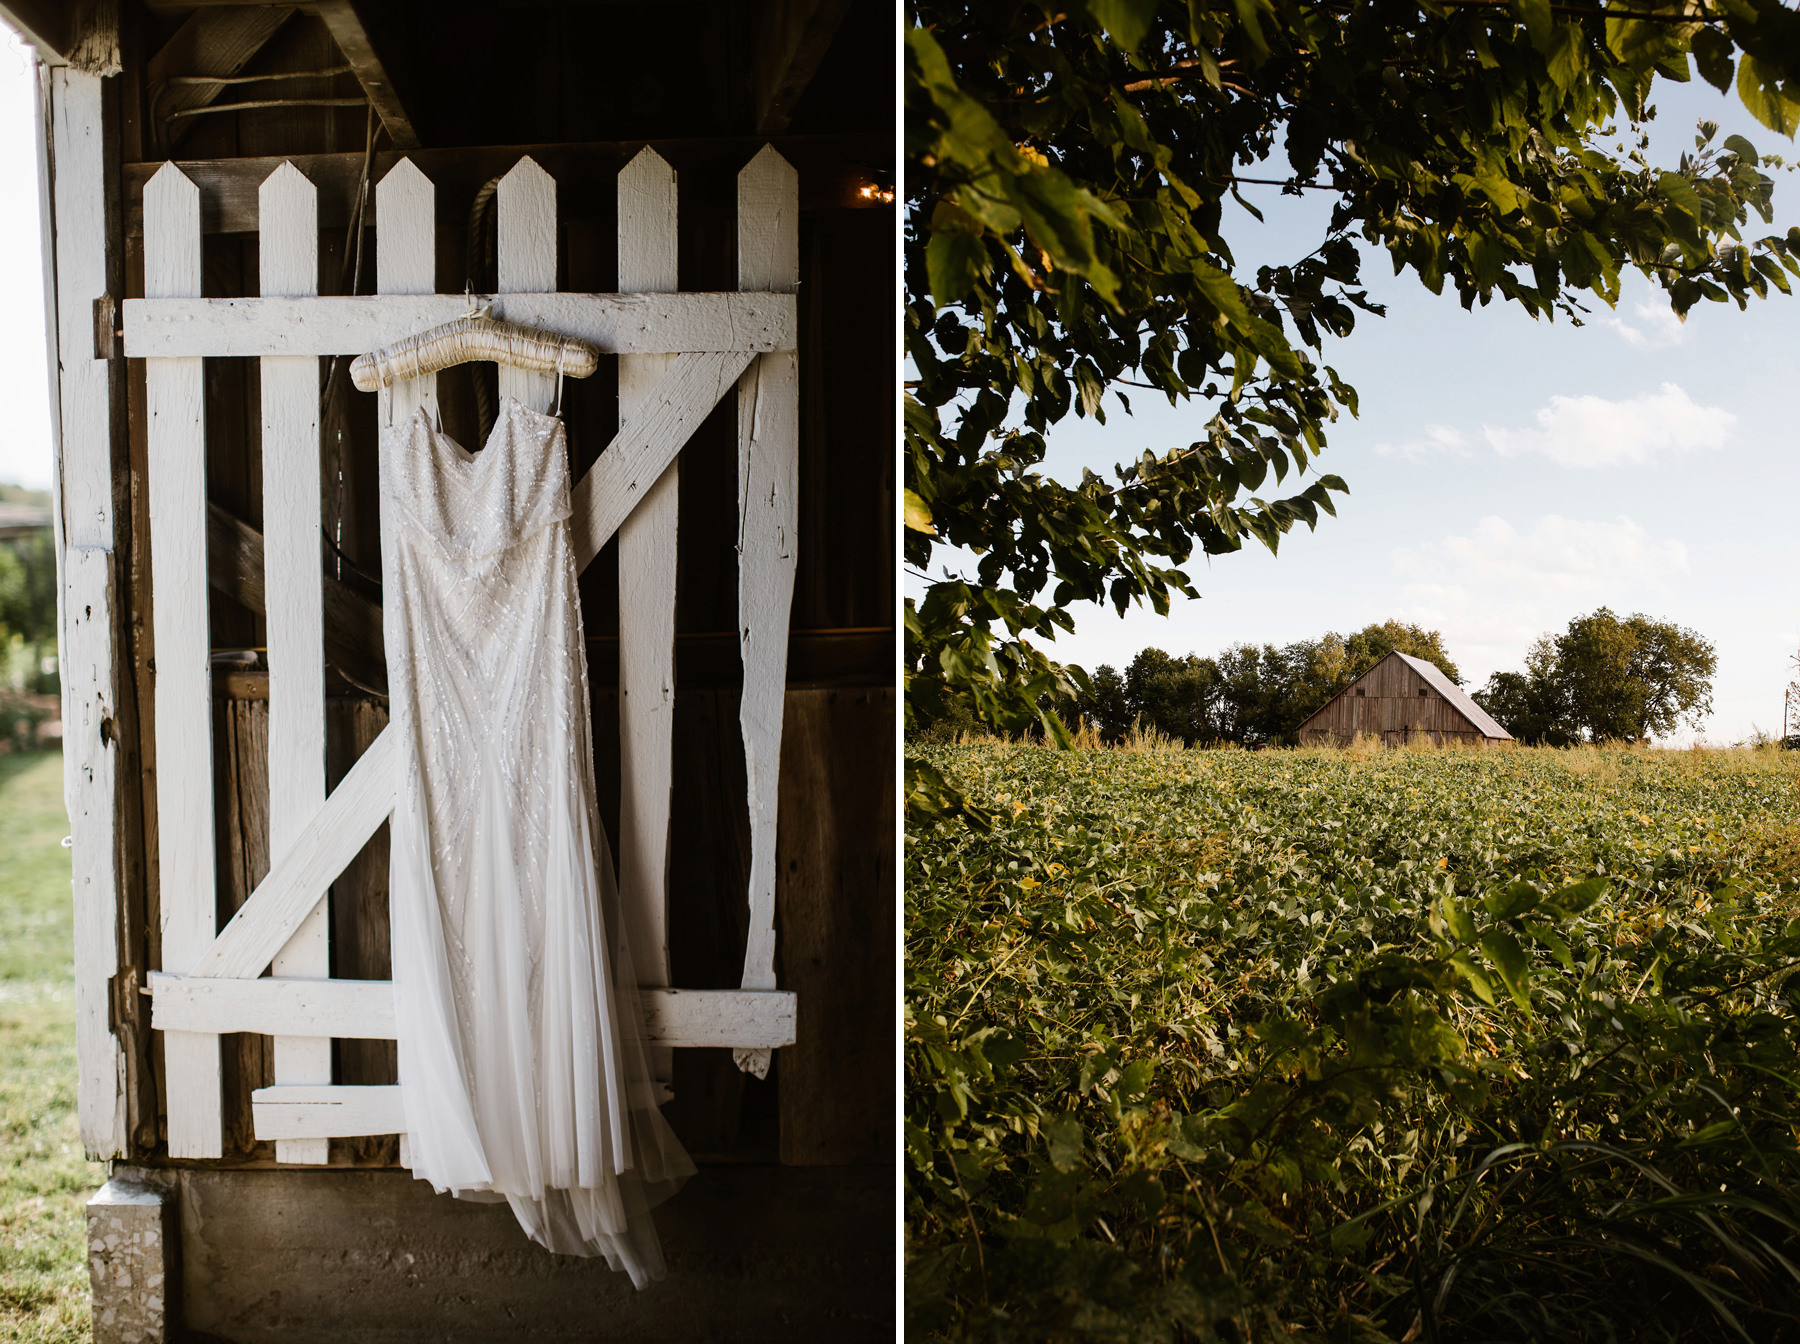 84_Alldredge Orchards Outdoor Wedding Kansas City, Missouri_Kindling Wedding Photography.JPG